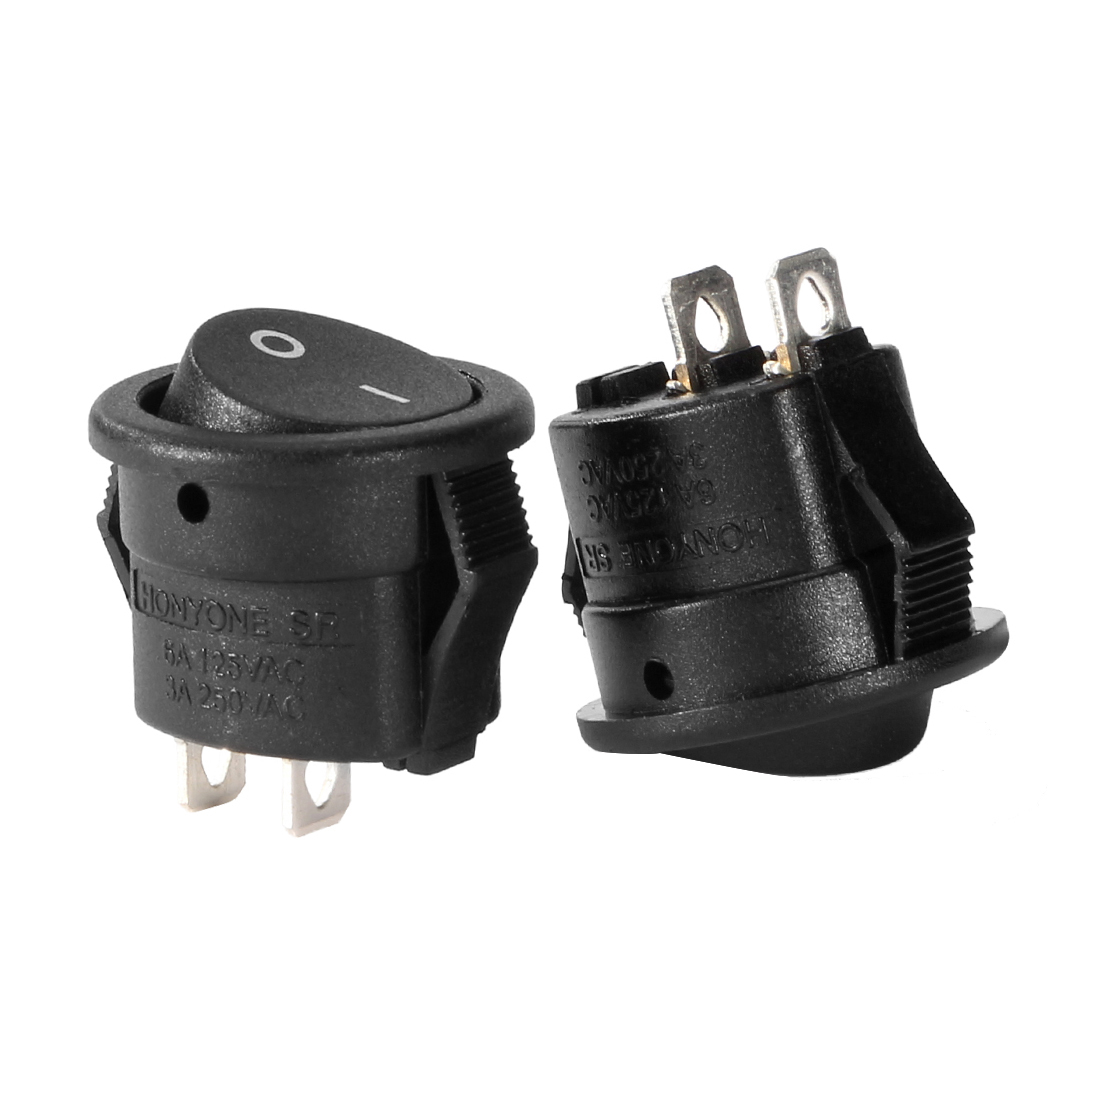 5Pcs AC 250V/3A 125V/6A 2P SPST 2 Position Round Rocker Switch Black